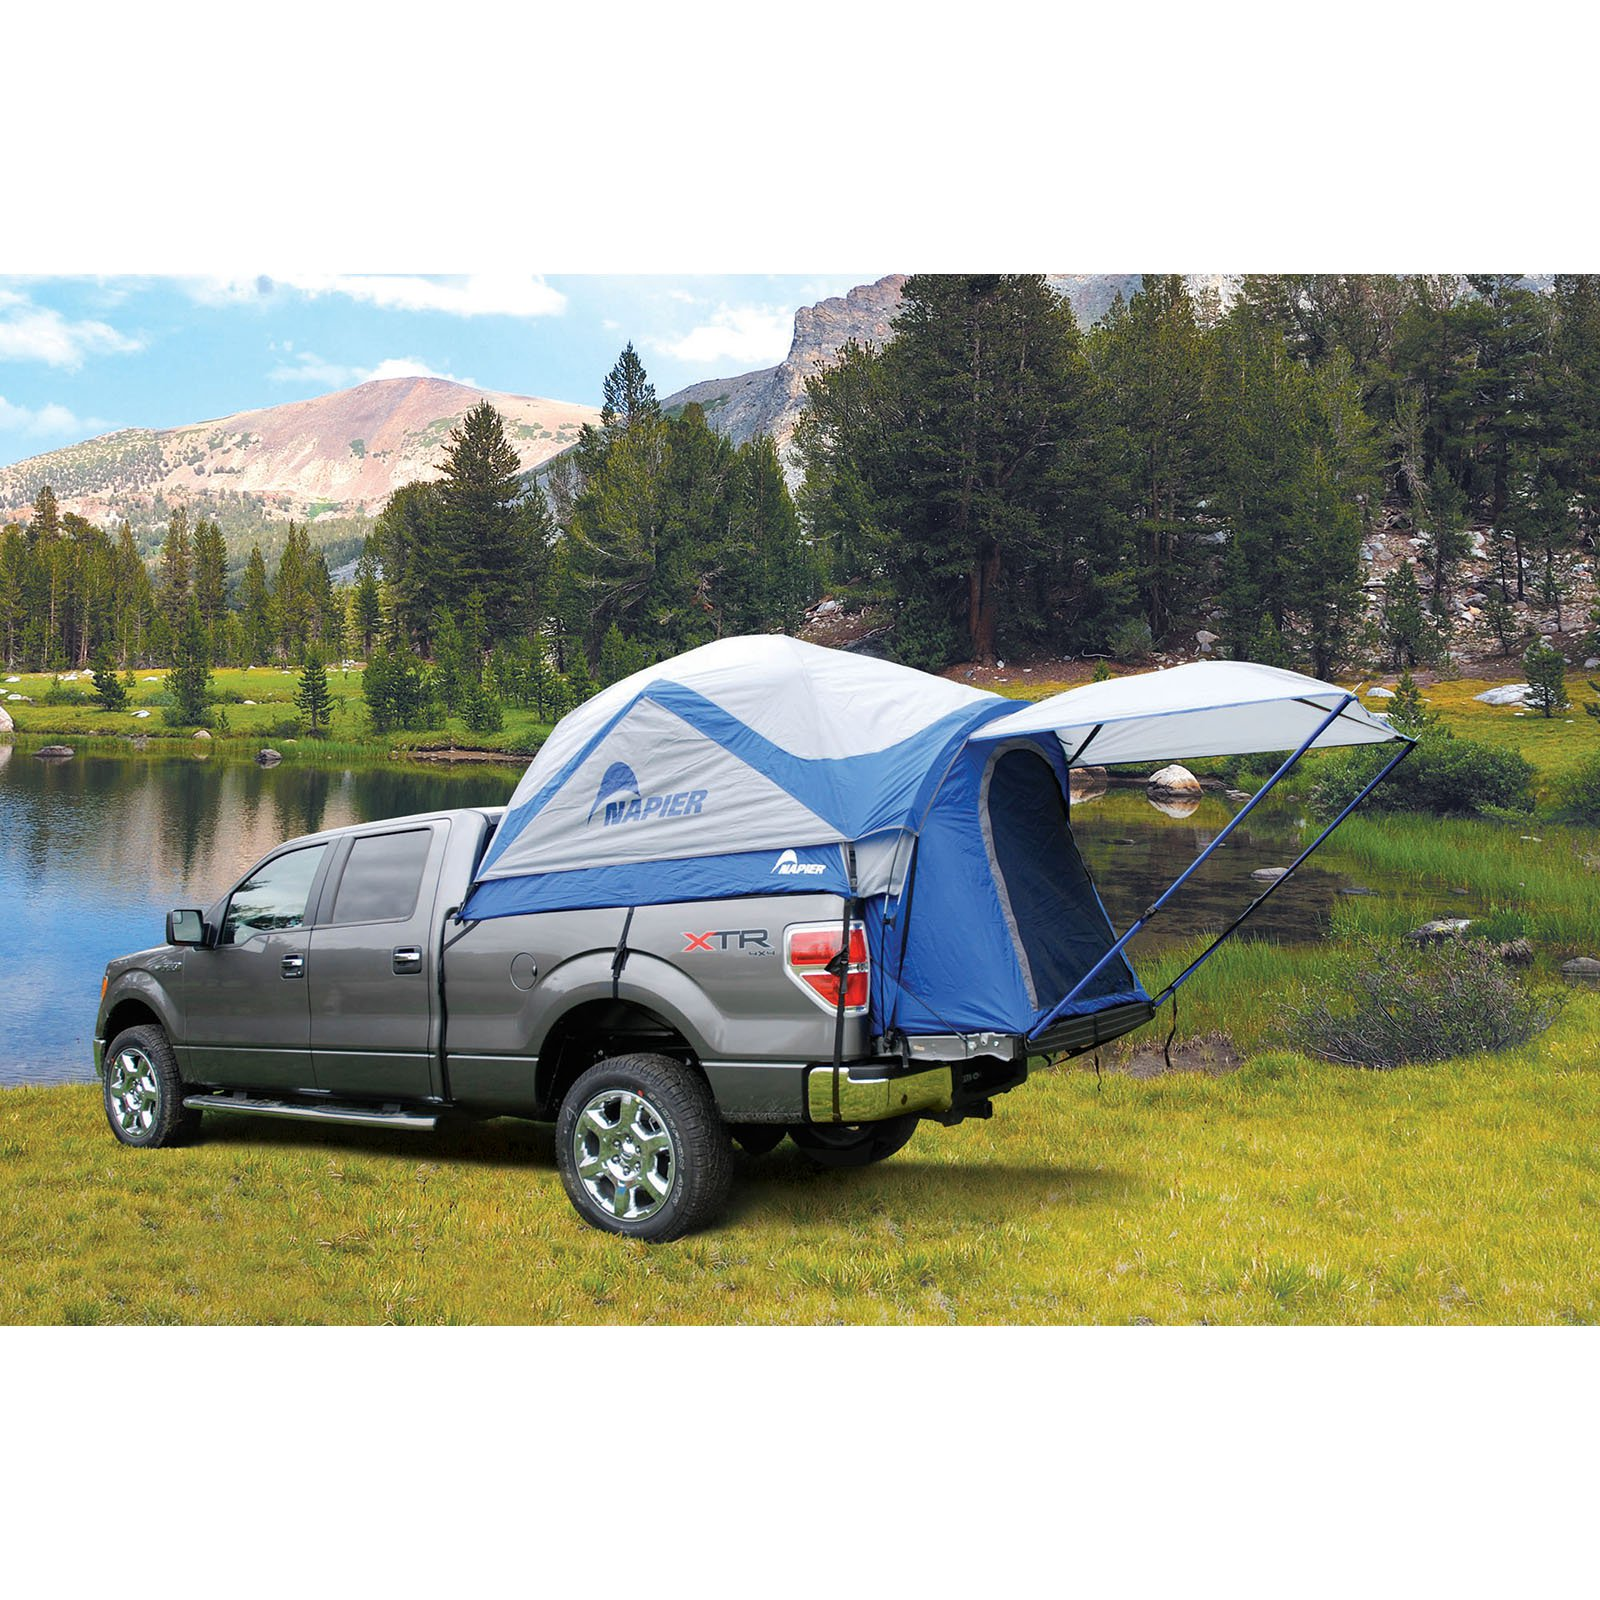 Napier Outdoors Sportz #57044 2 Person Truck Tent, Compac...